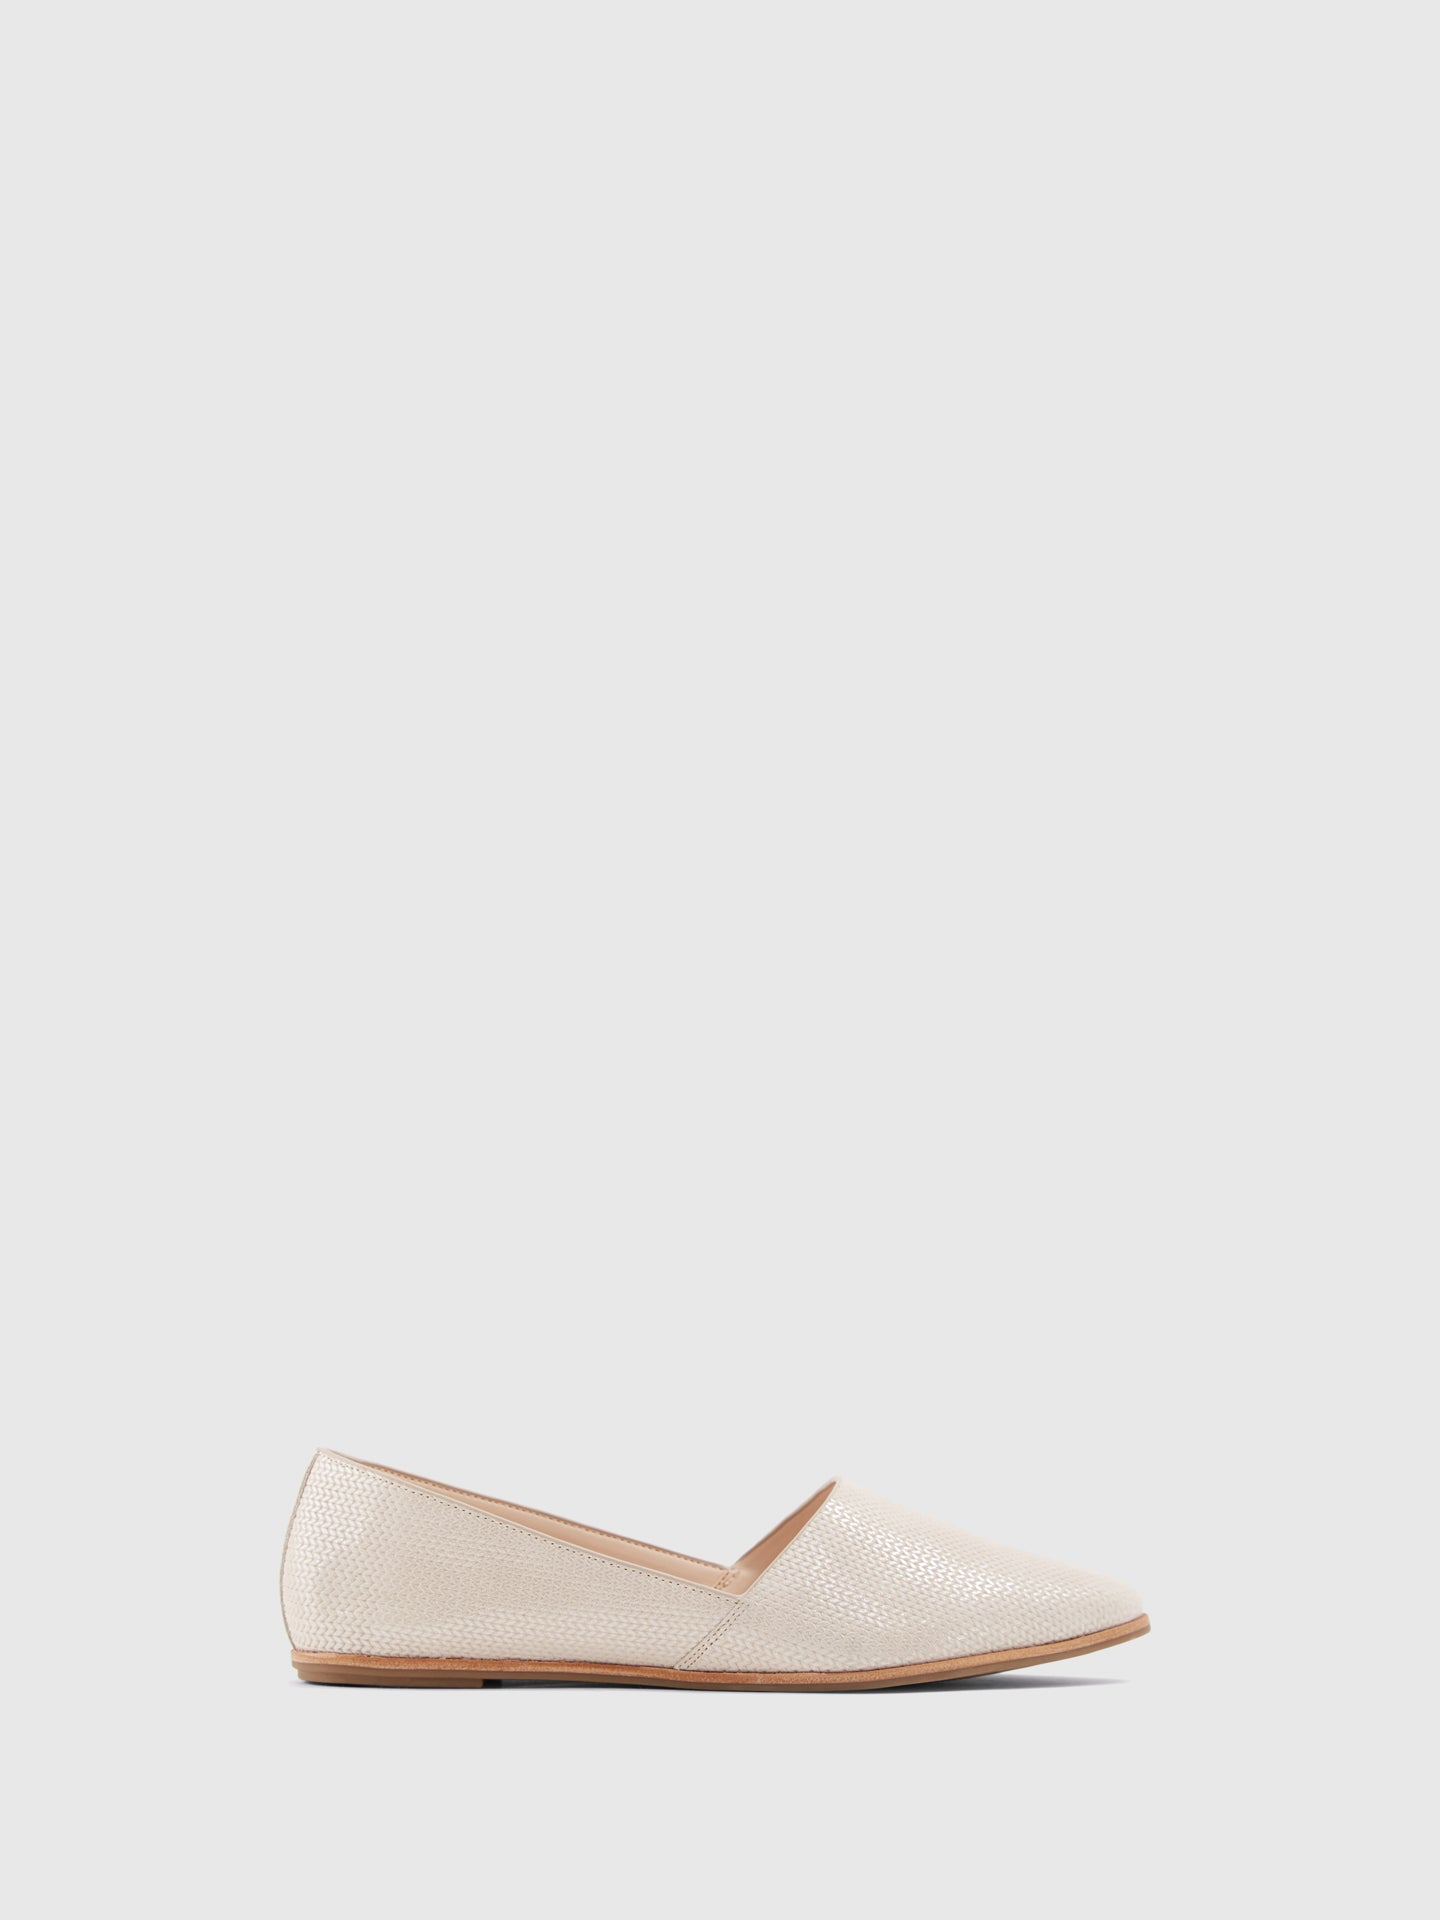 Aldo Beige Pointed Toe Ballerinas